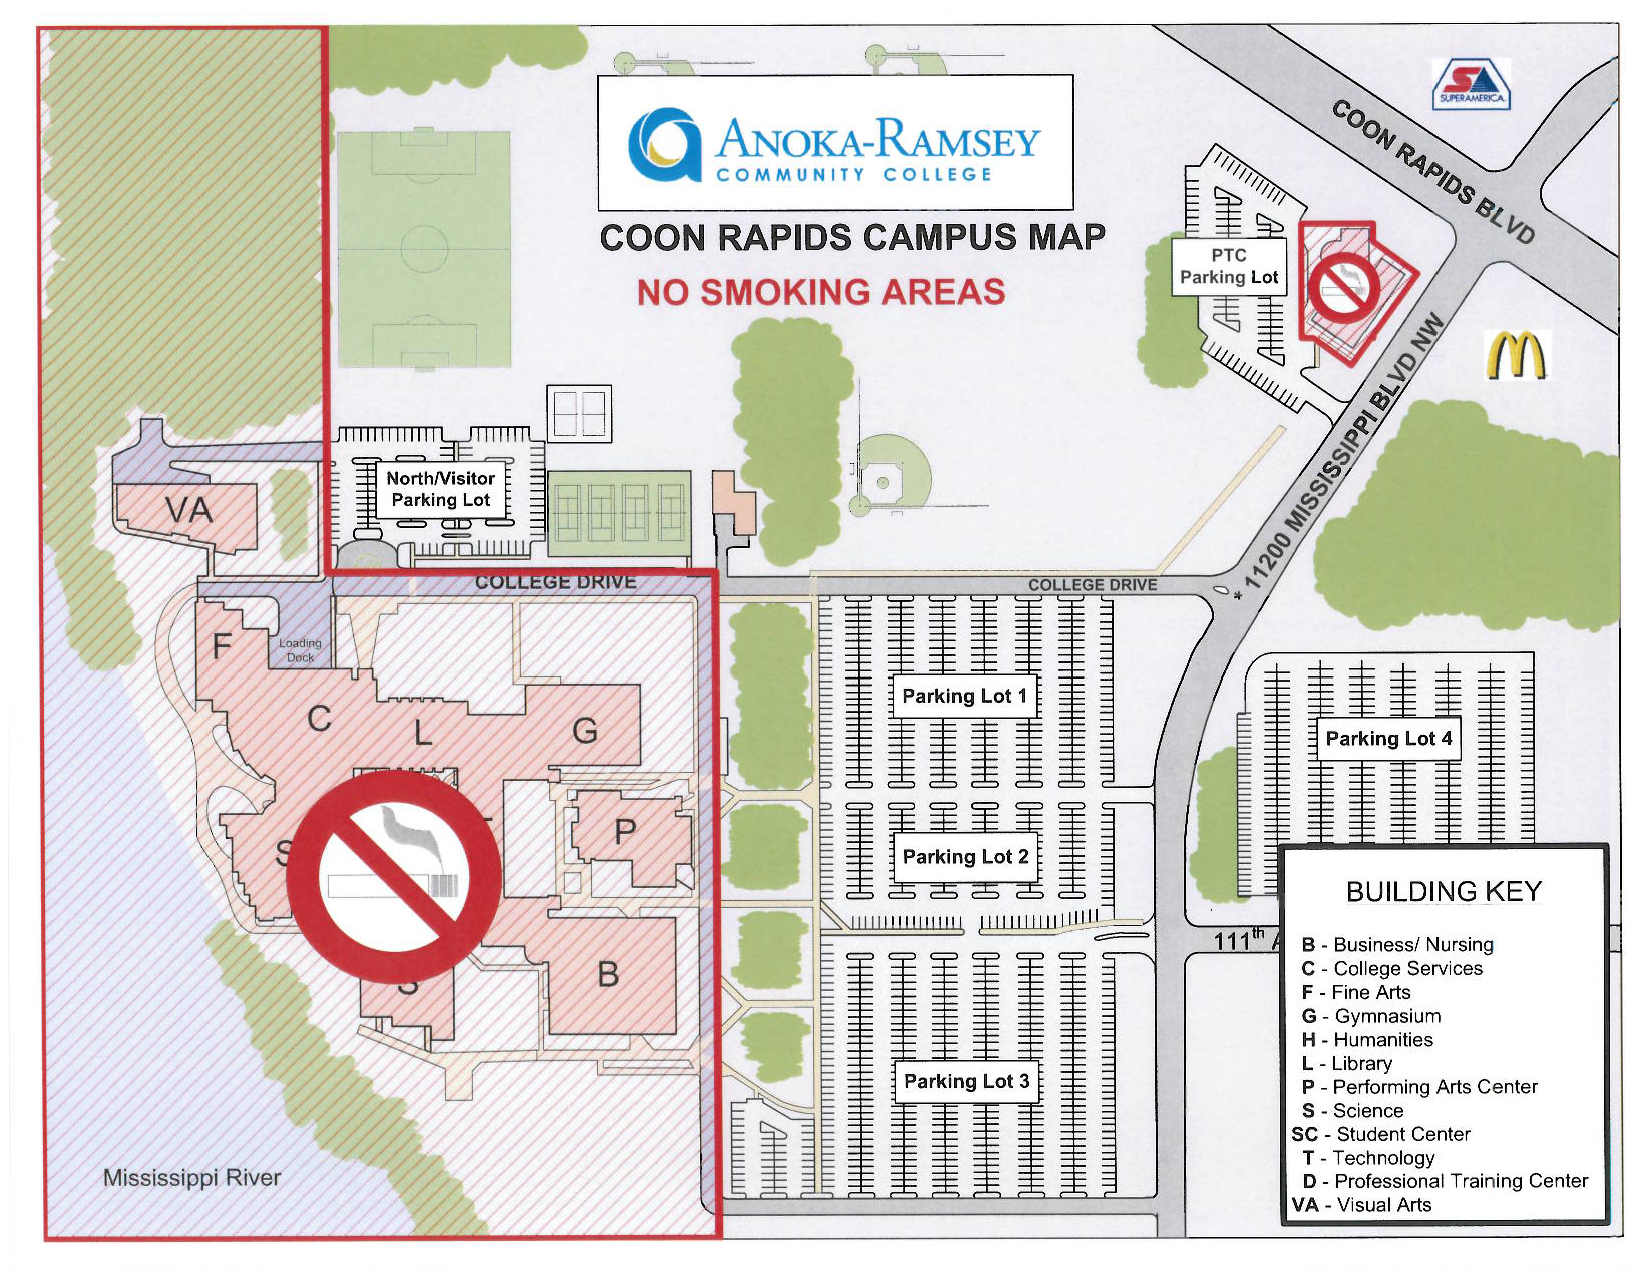 ARCC Coon Rapids Designated Smoking Areas